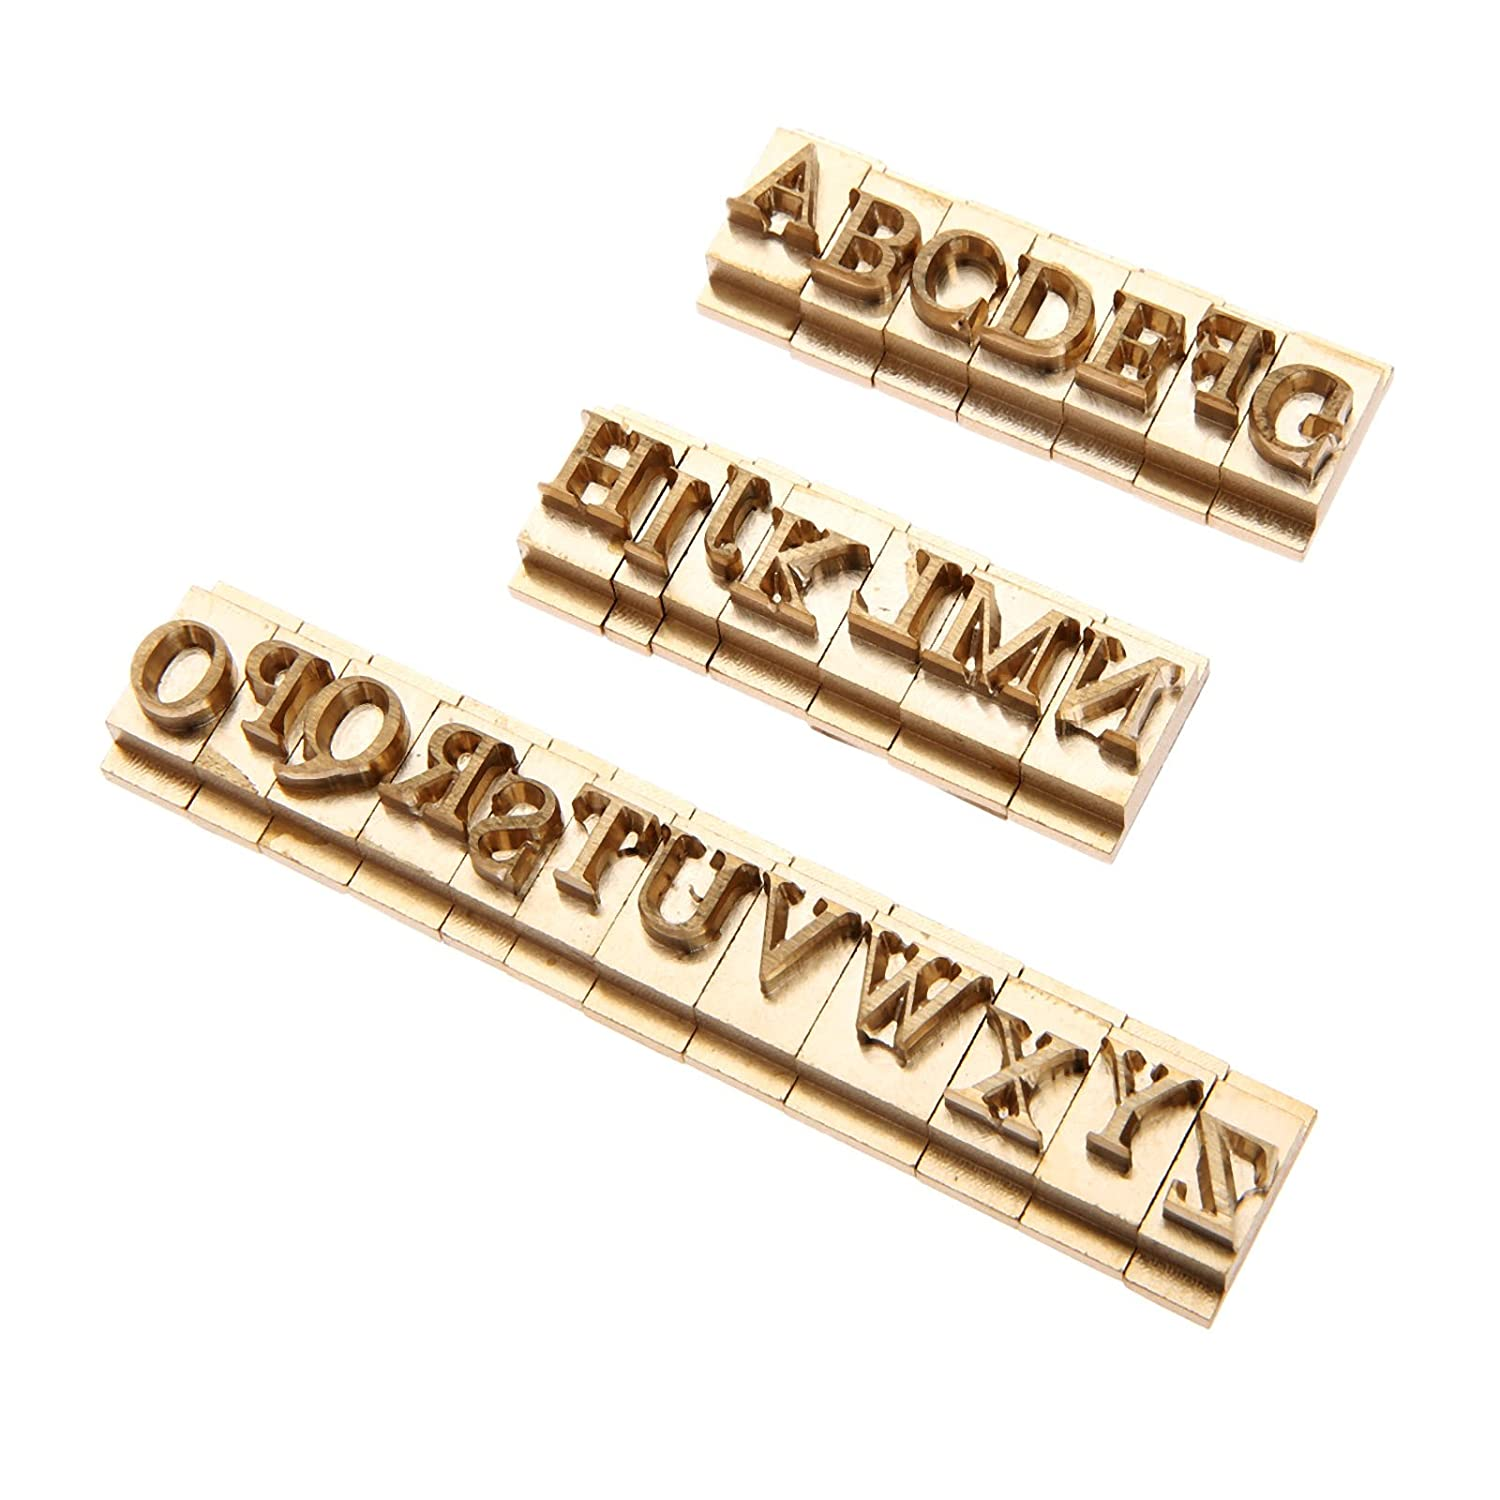 26pcs/Set Brass Alphabet Letter Font Stamp Mold Leather Craft Seal Tool A-Z Captal Letters Hicello 4336864564